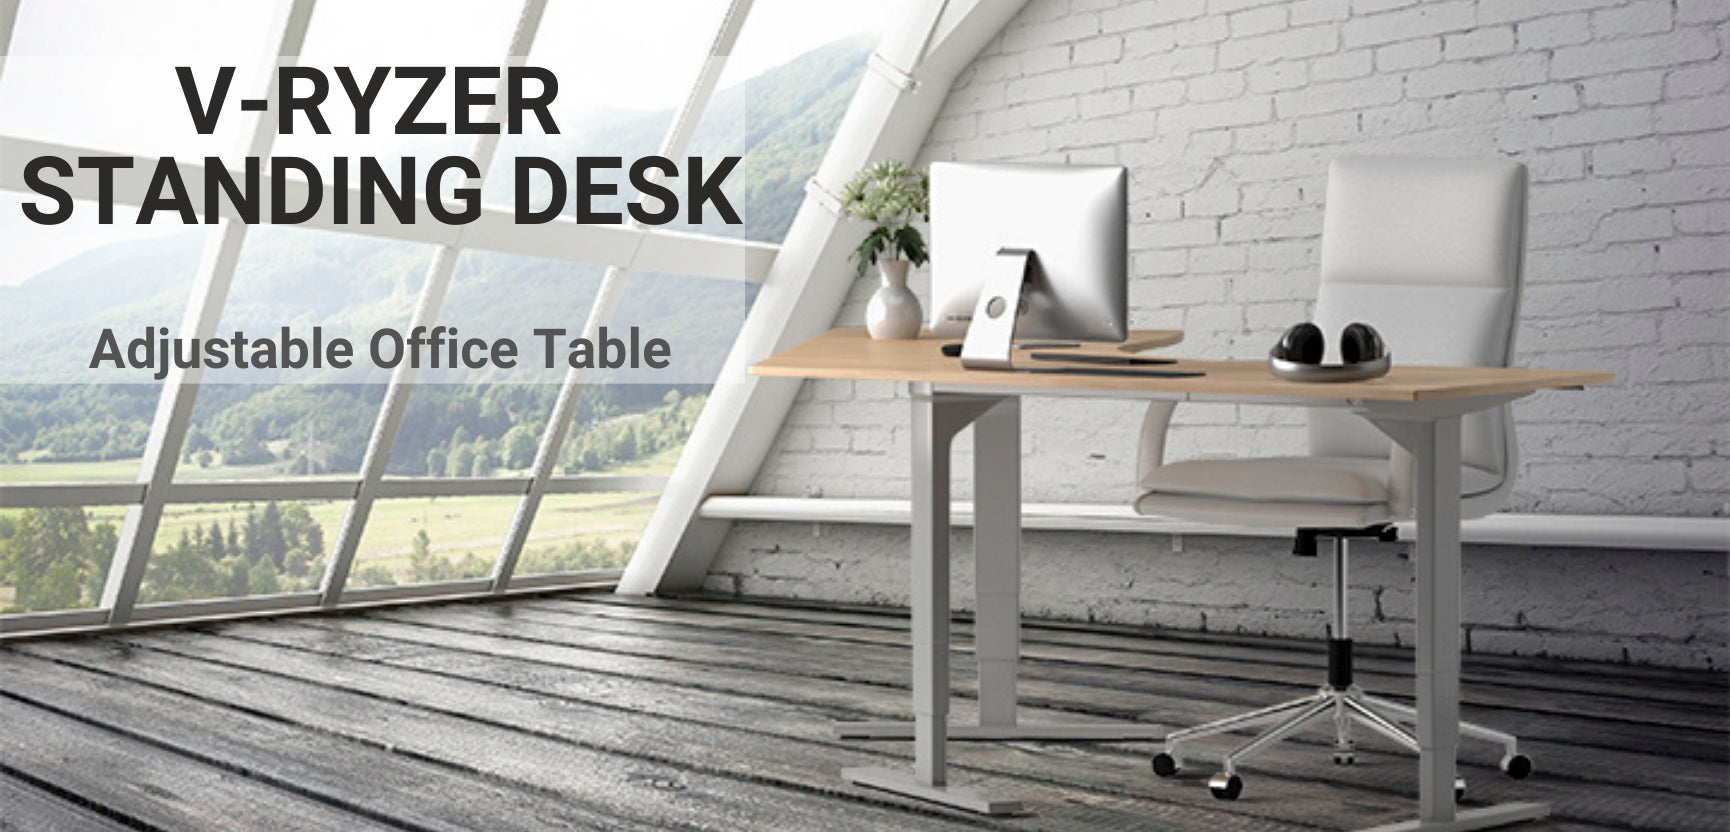 Why the V Ryzer stands out from other office desks?